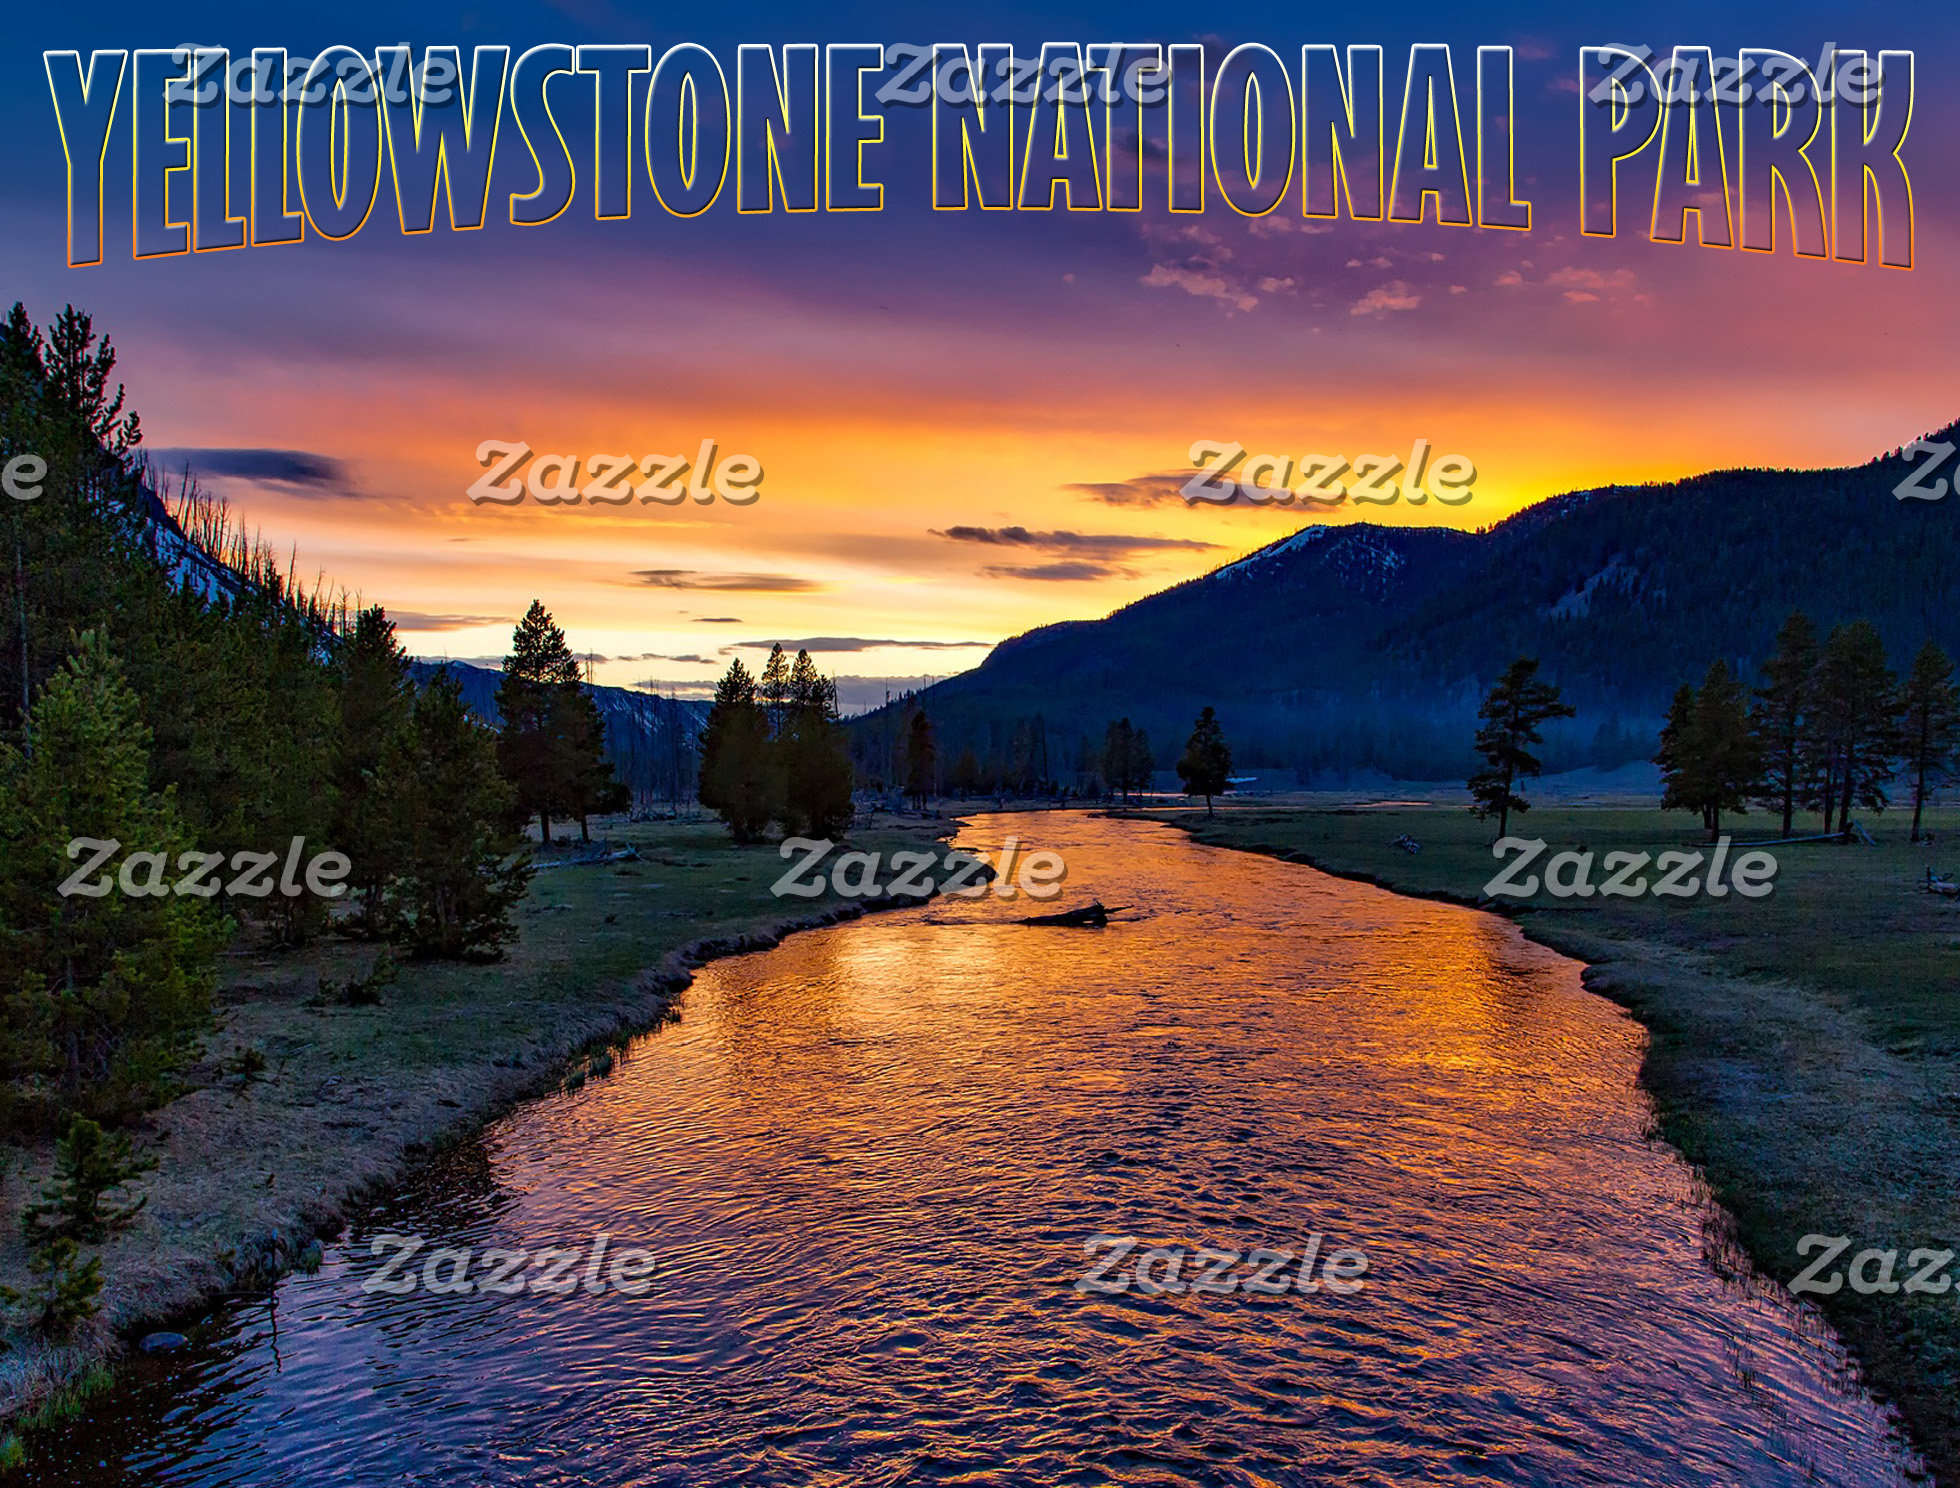 Yellowstone National Par, Wyoming (USA)